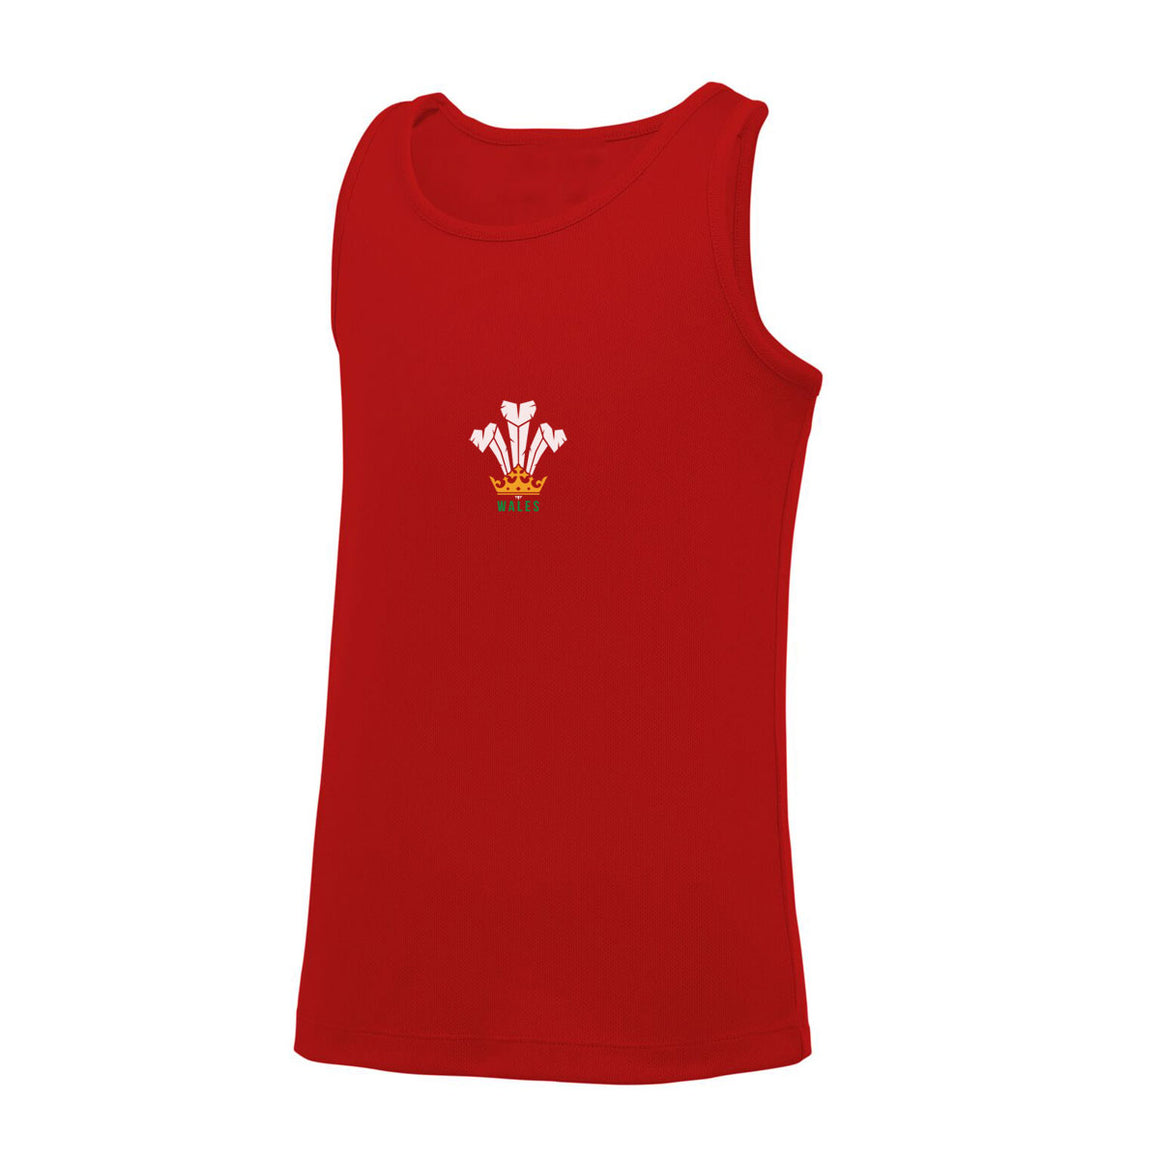 Men's Cool Dry® Gym Vest - Feathers RED